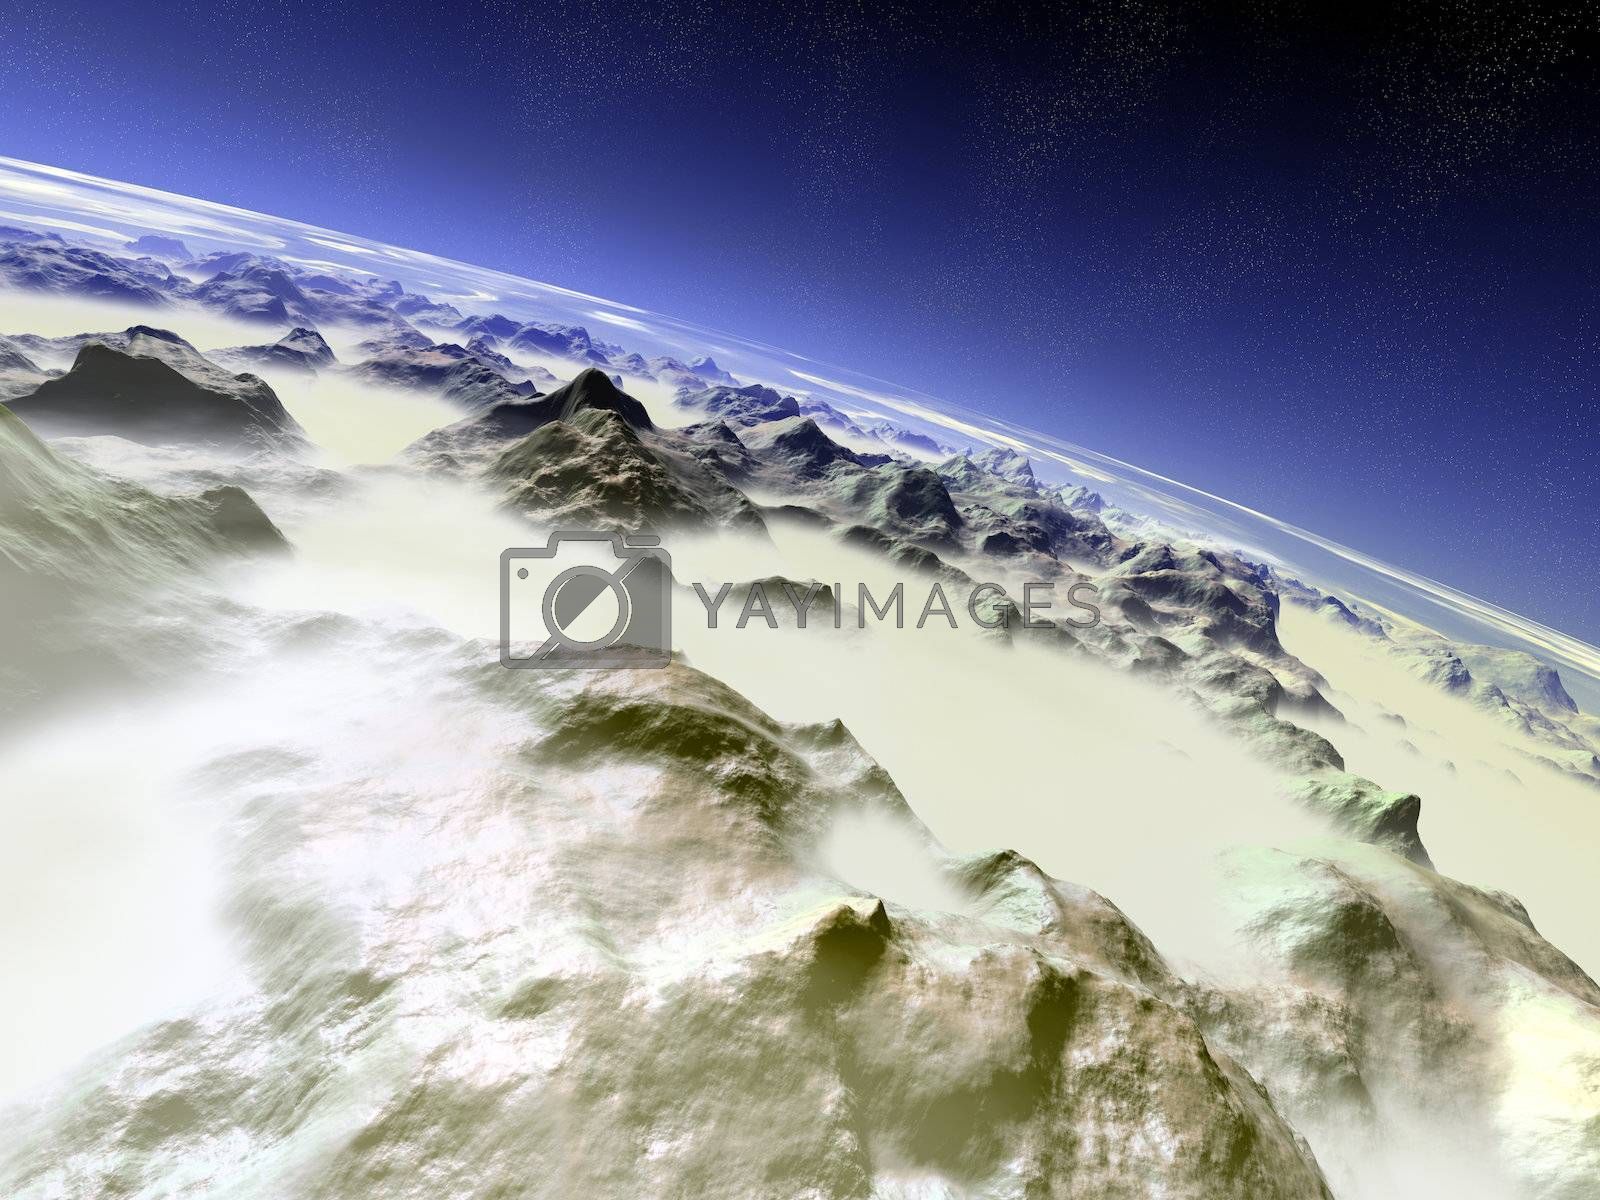 3D rendered Illustration. 7000m above the mountains.